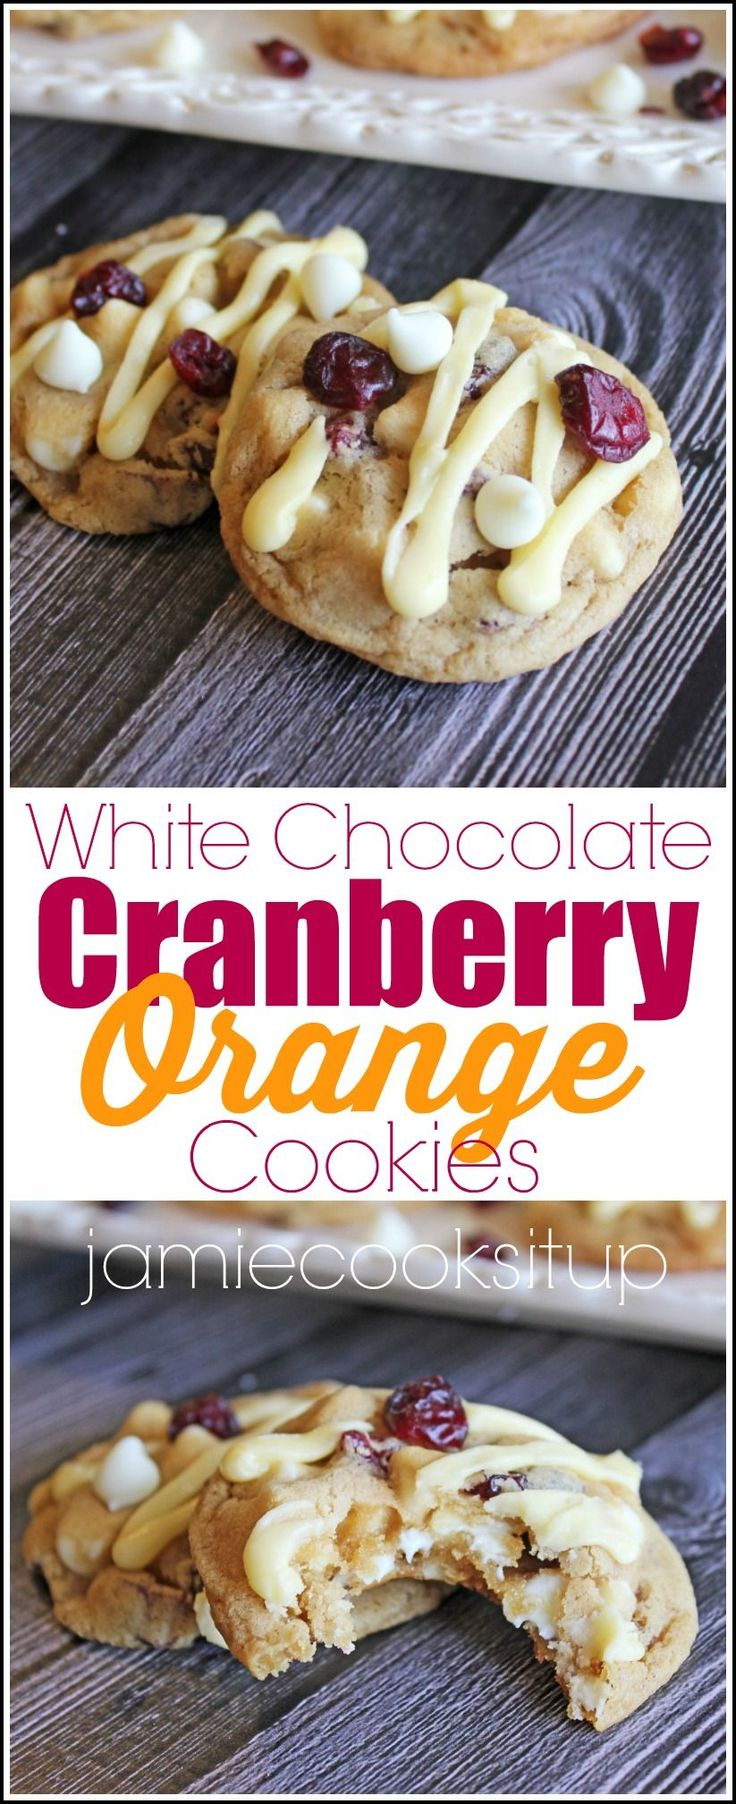 White Chocolate Cranberry Orange Cookies from Jamie Cooks It Up! These cookies are soft, chewy and perfect for Christmas Cookie Exchanges.